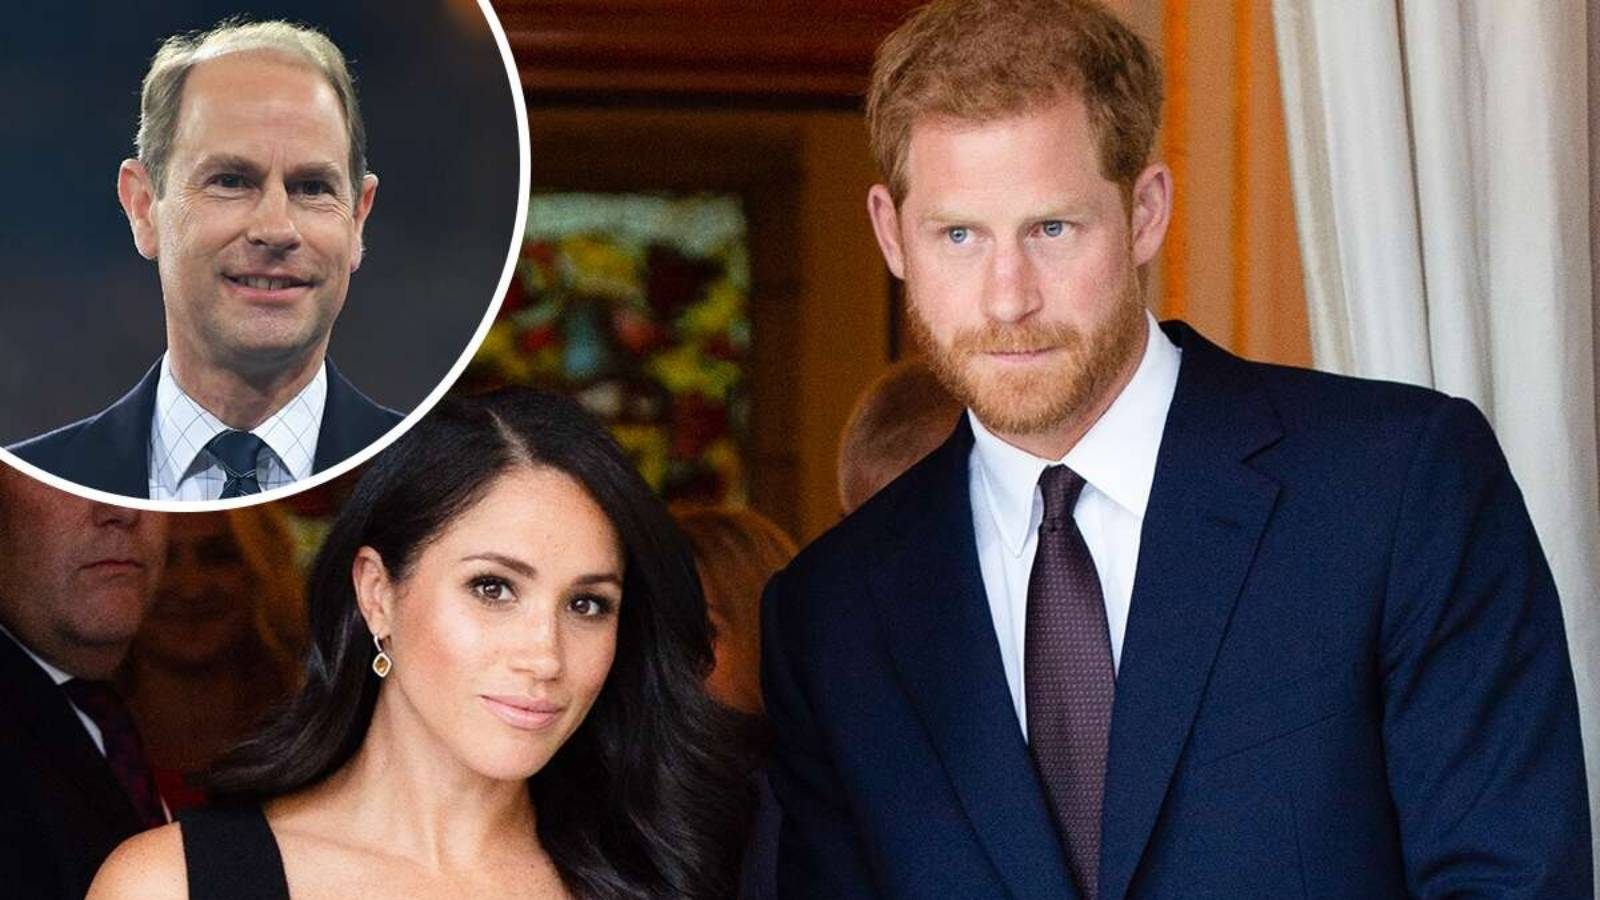 Prince Edward weighs in on Meghan Markle and Prince Harry's royal rift